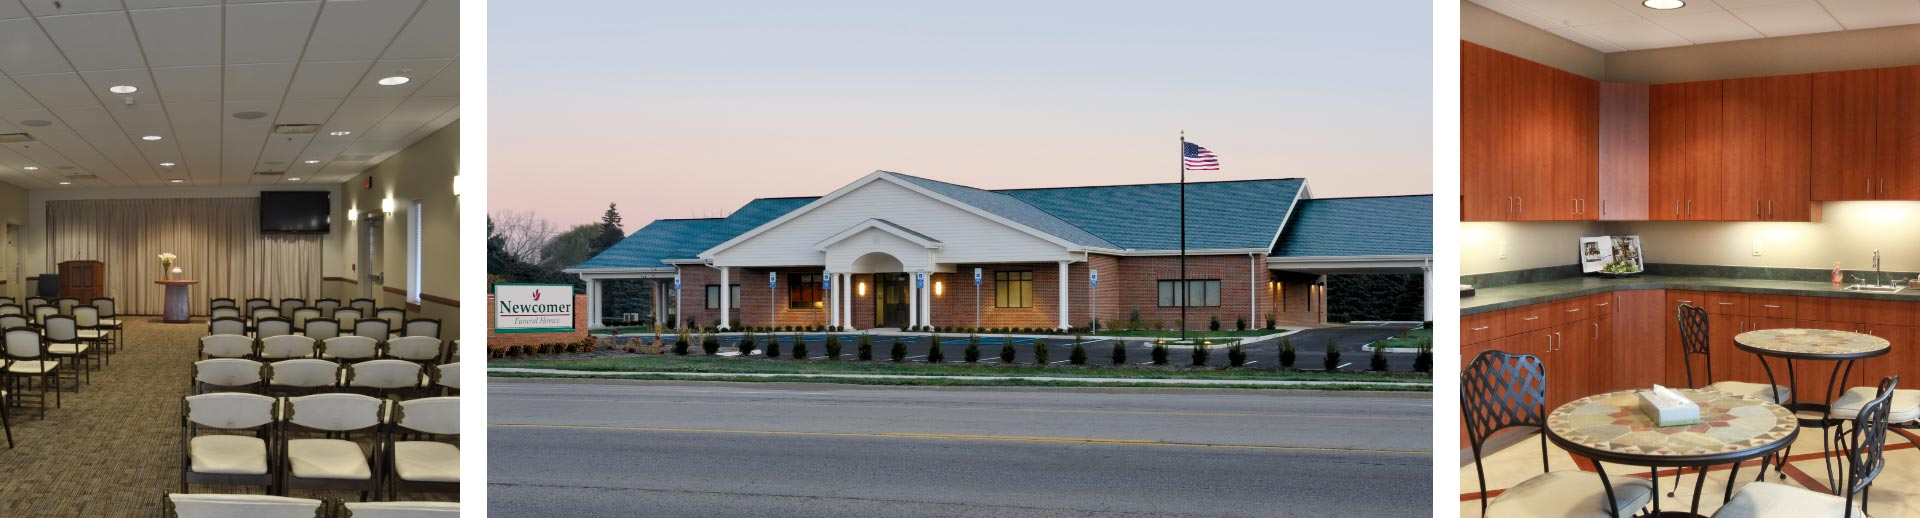 Funeral-Home-Southwest-Toledo-OH